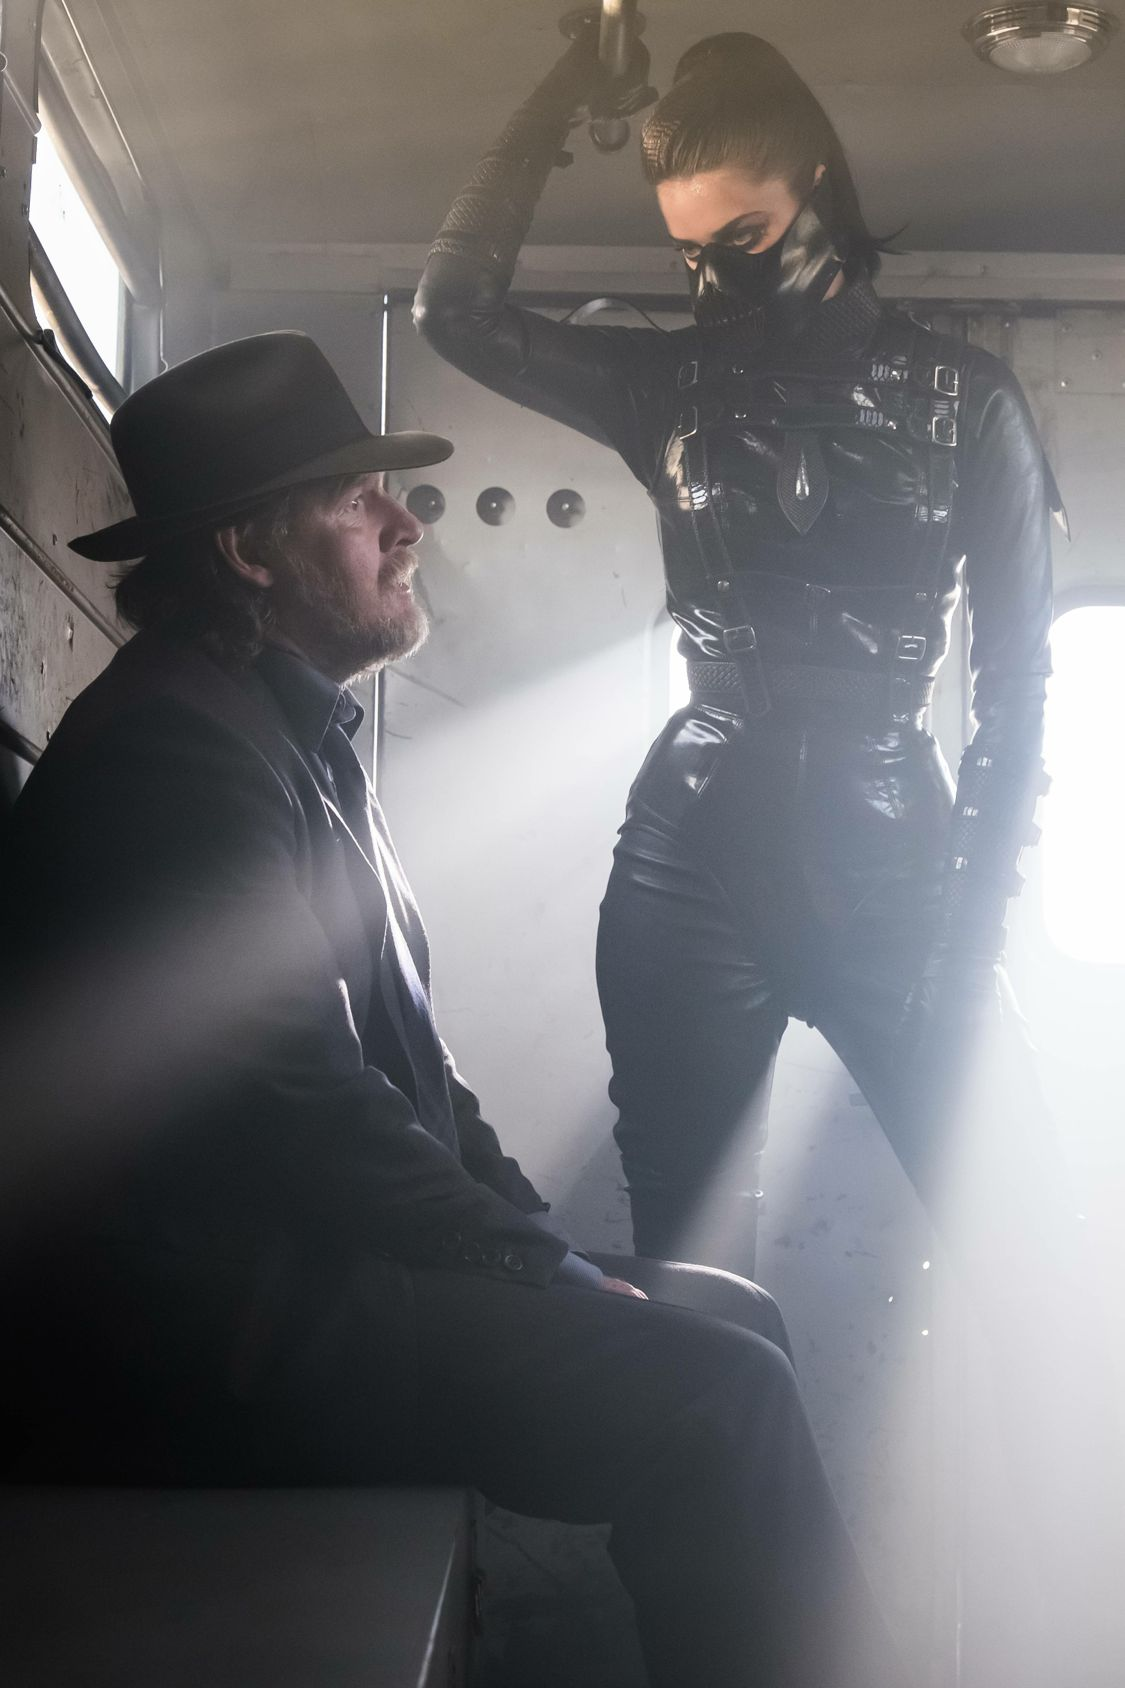 """GOTHAM: Donal Logue in the """"Mad City: Burn The Witch"""" episode of GOTHAM airing airing Monday, Sept. 26 (8:00-9:01 PM ET/PT) on FOX.  ©2016 Fox Broadcasting Co. Cr: Jeff Neumann/FOX."""